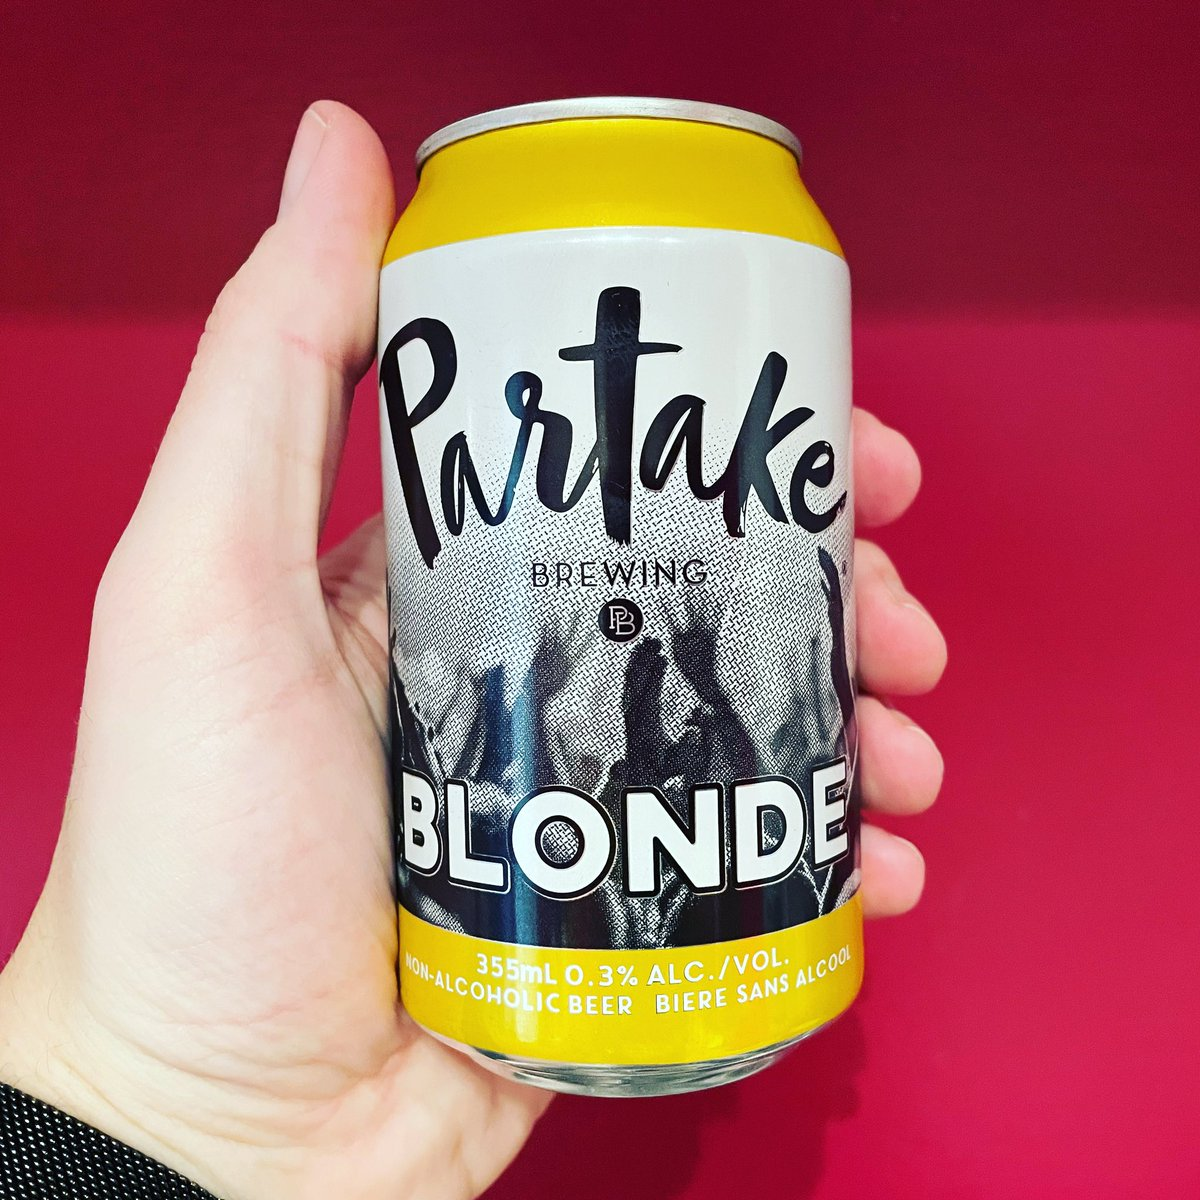 Happy Beer Can Appreciation Day! I'm celebrating with a can of @DrinkPartake Blonde. It's good stuff! #DryJanuary #BeerCanAppreciationDay